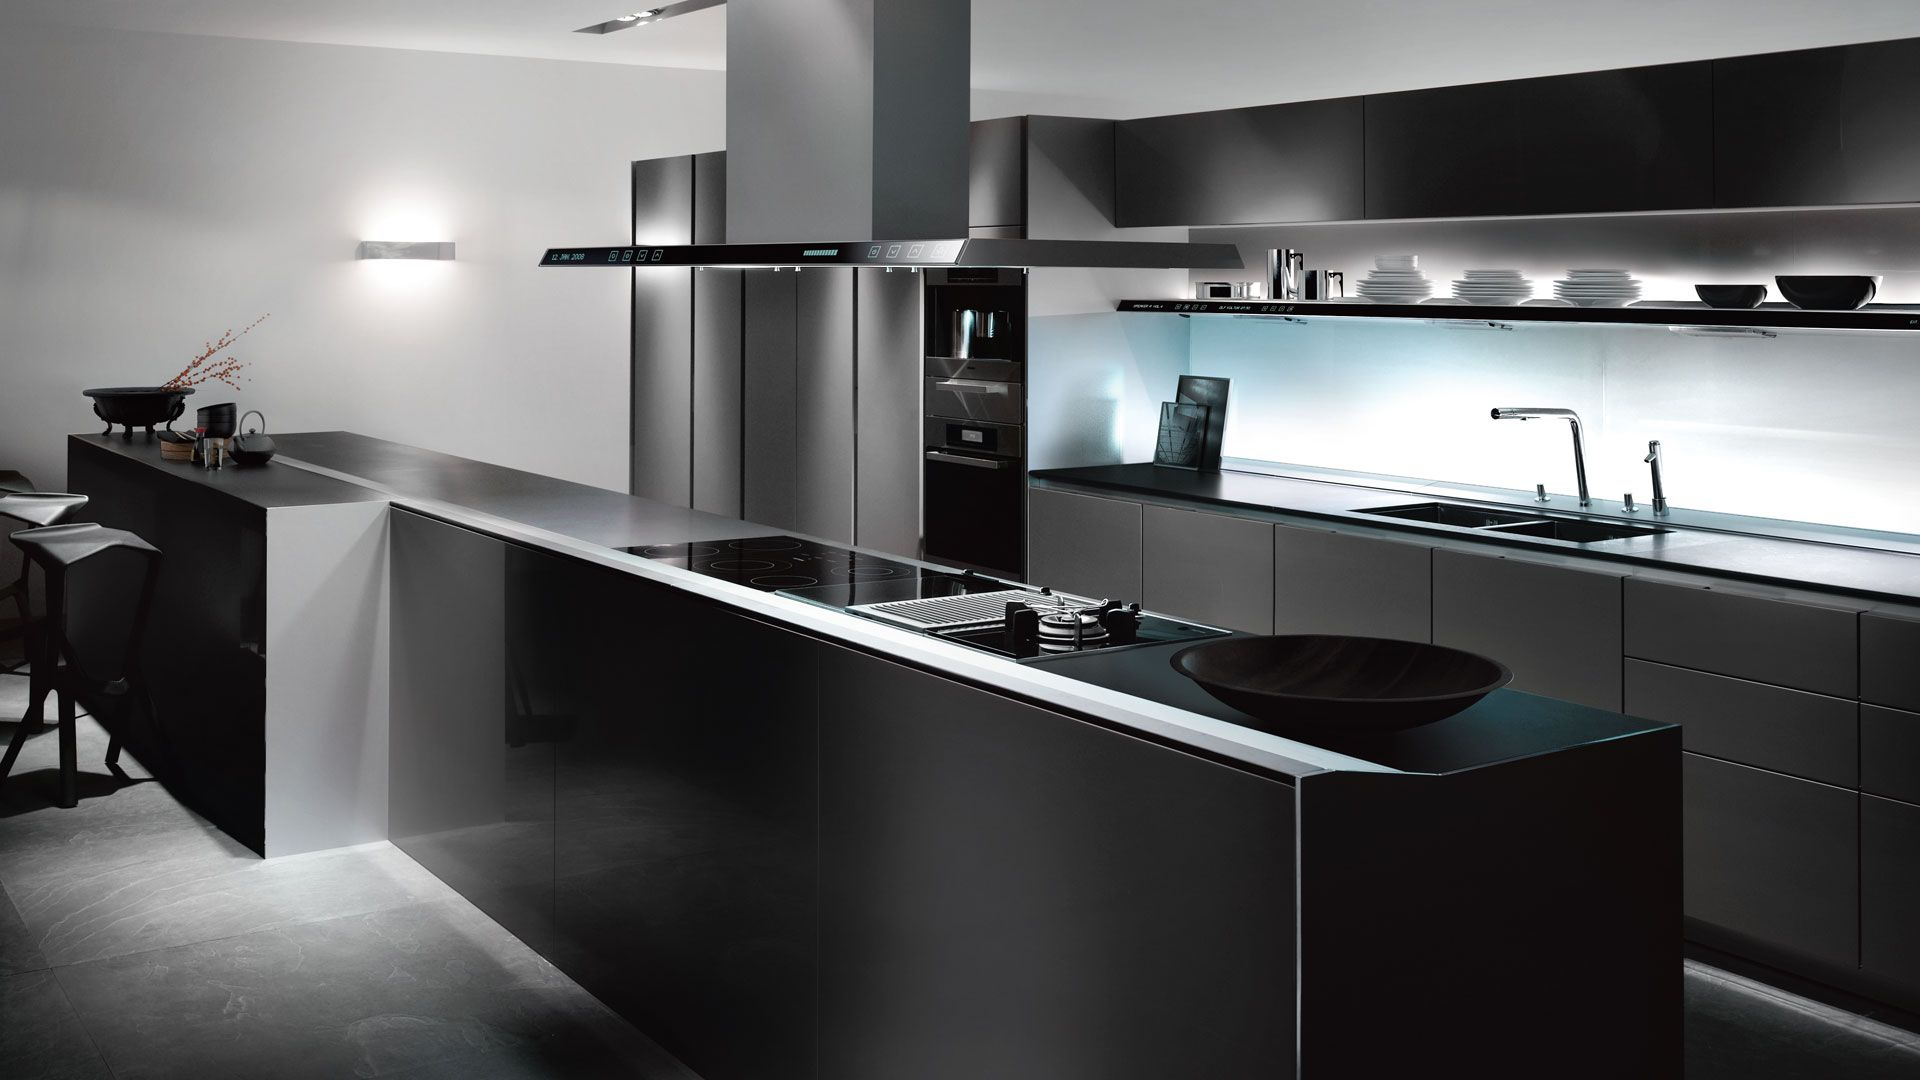 Kitchen Design By SieMatic, For The Kitchen And Beyond   From Timelessly  Elegant Furniture To Unique Room Design Concepts.